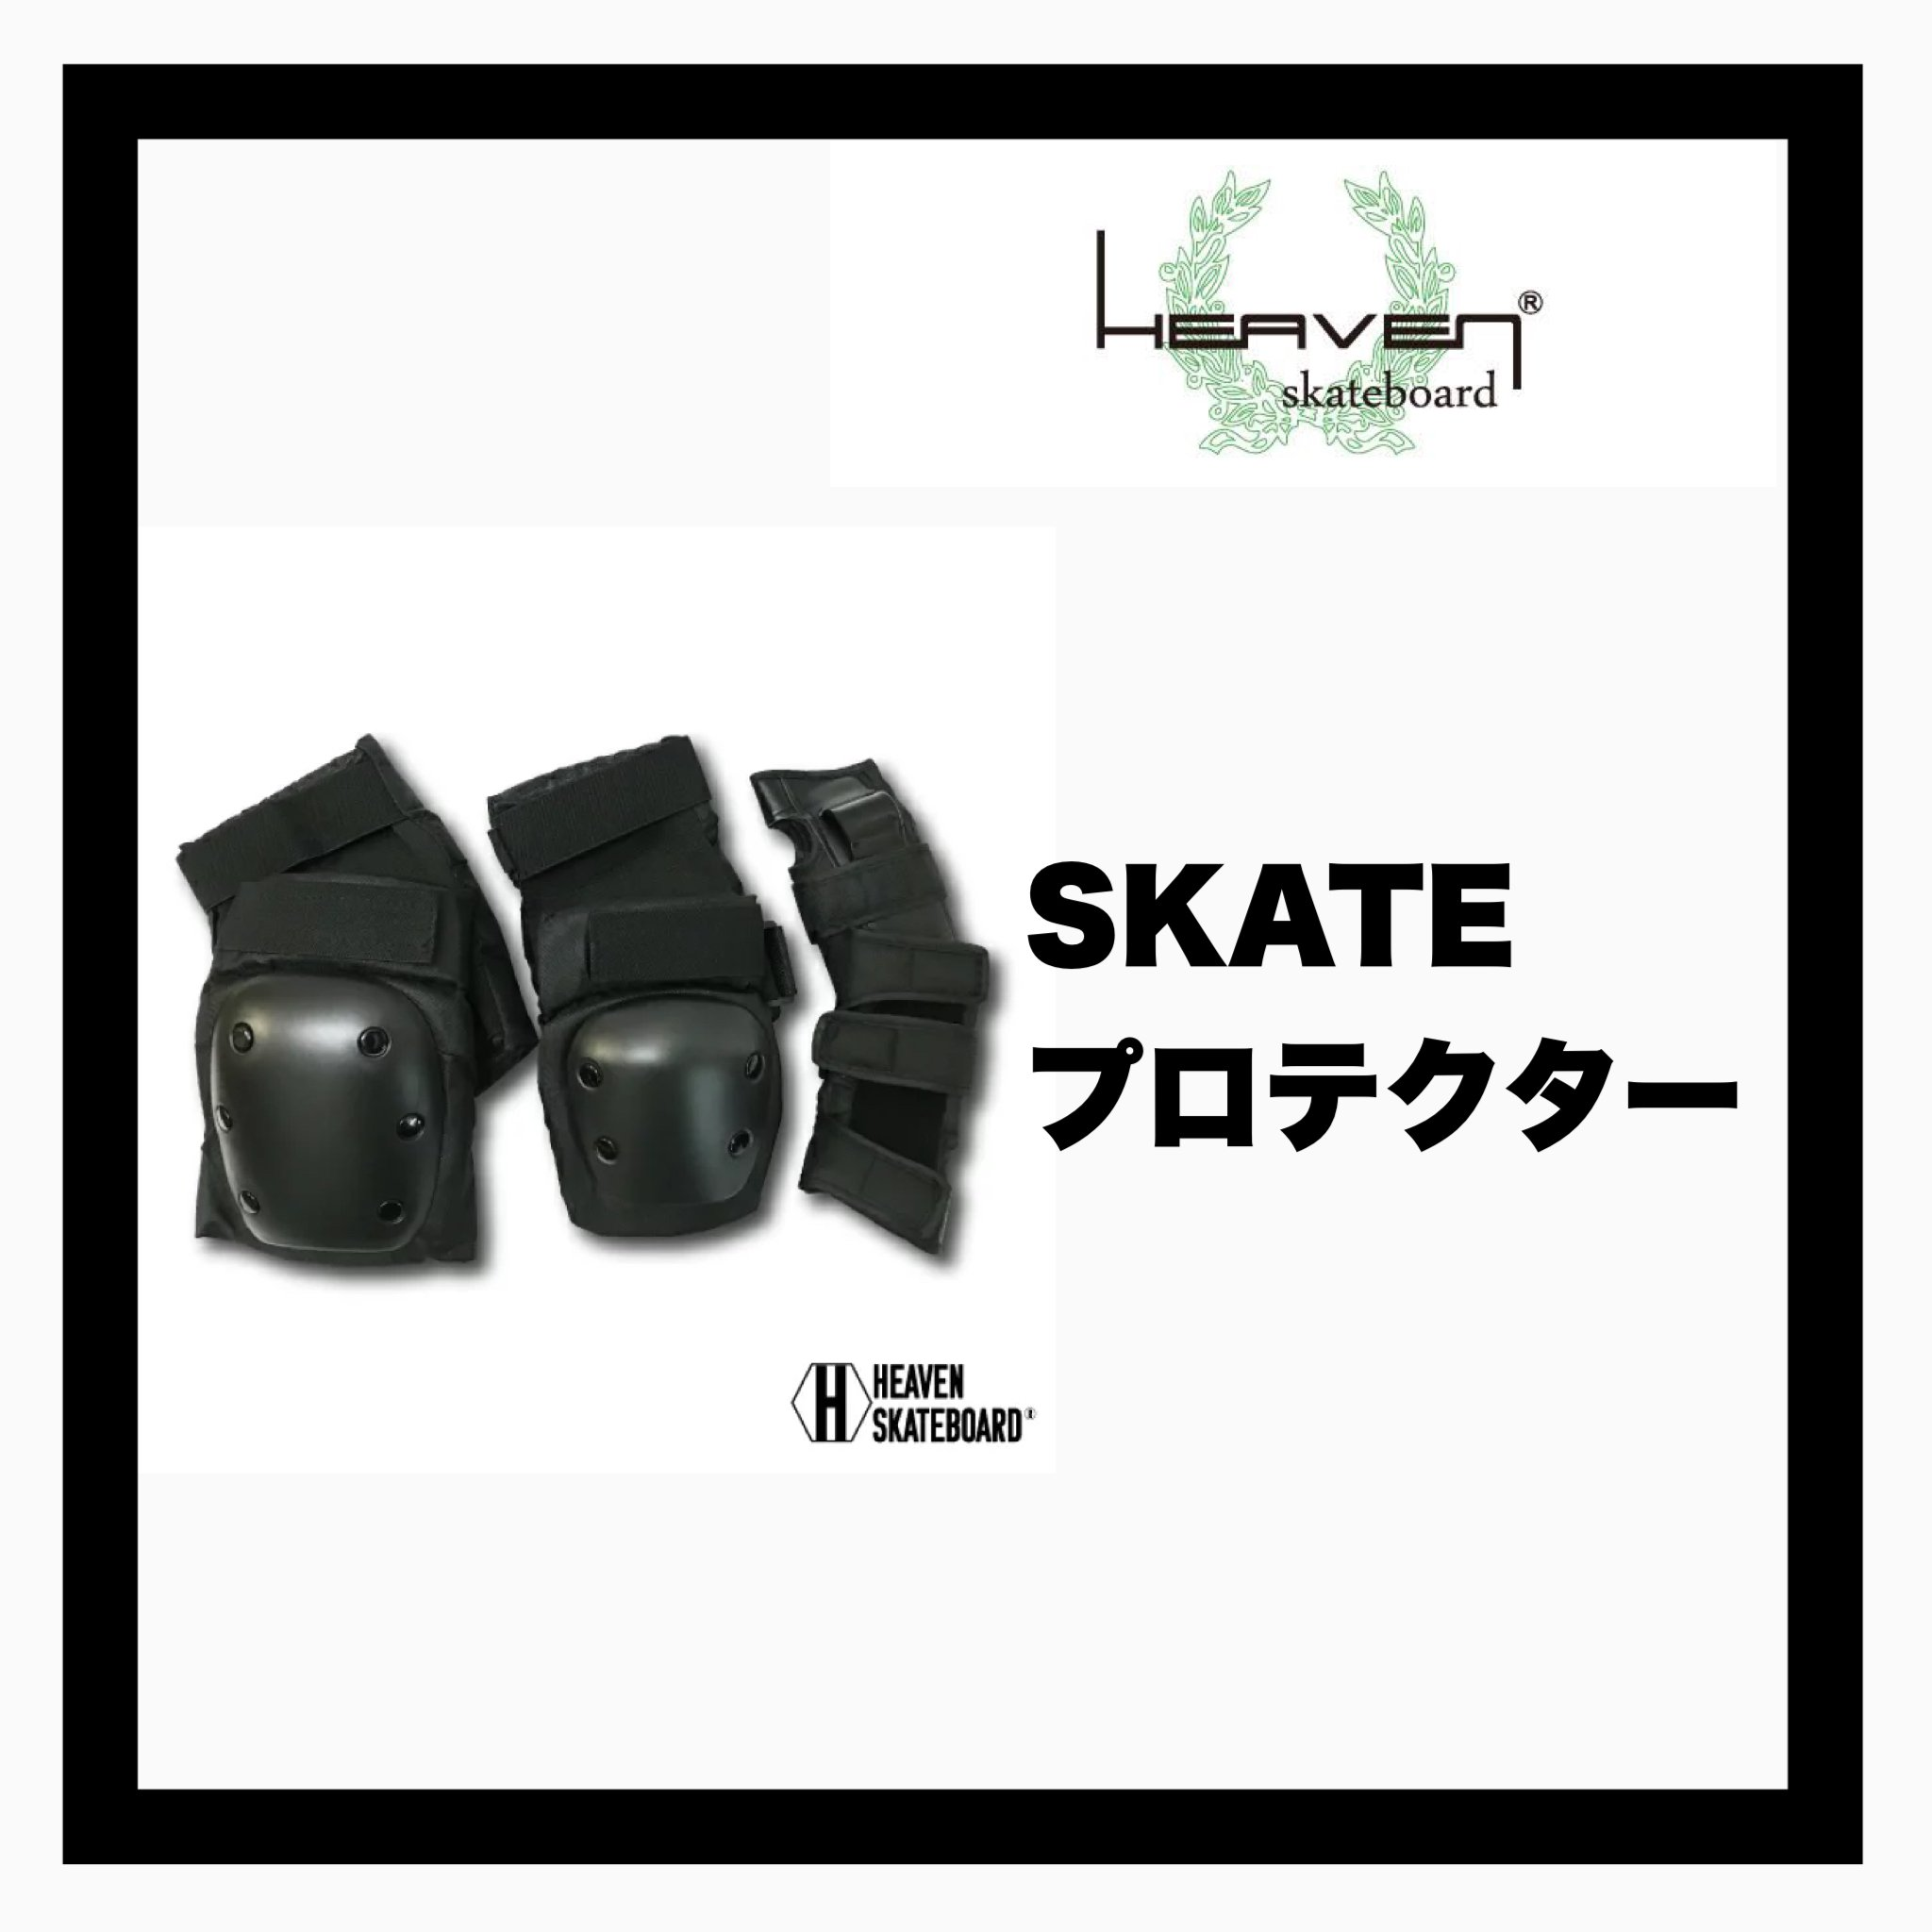 <img class='new_mark_img1' src='https://img.shop-pro.jp/img/new/icons14.gif' style='border:none;display:inline;margin:0px;padding:0px;width:auto;' />【HEAVEN SKATEBOARD】 スケートプロテクター3点セット